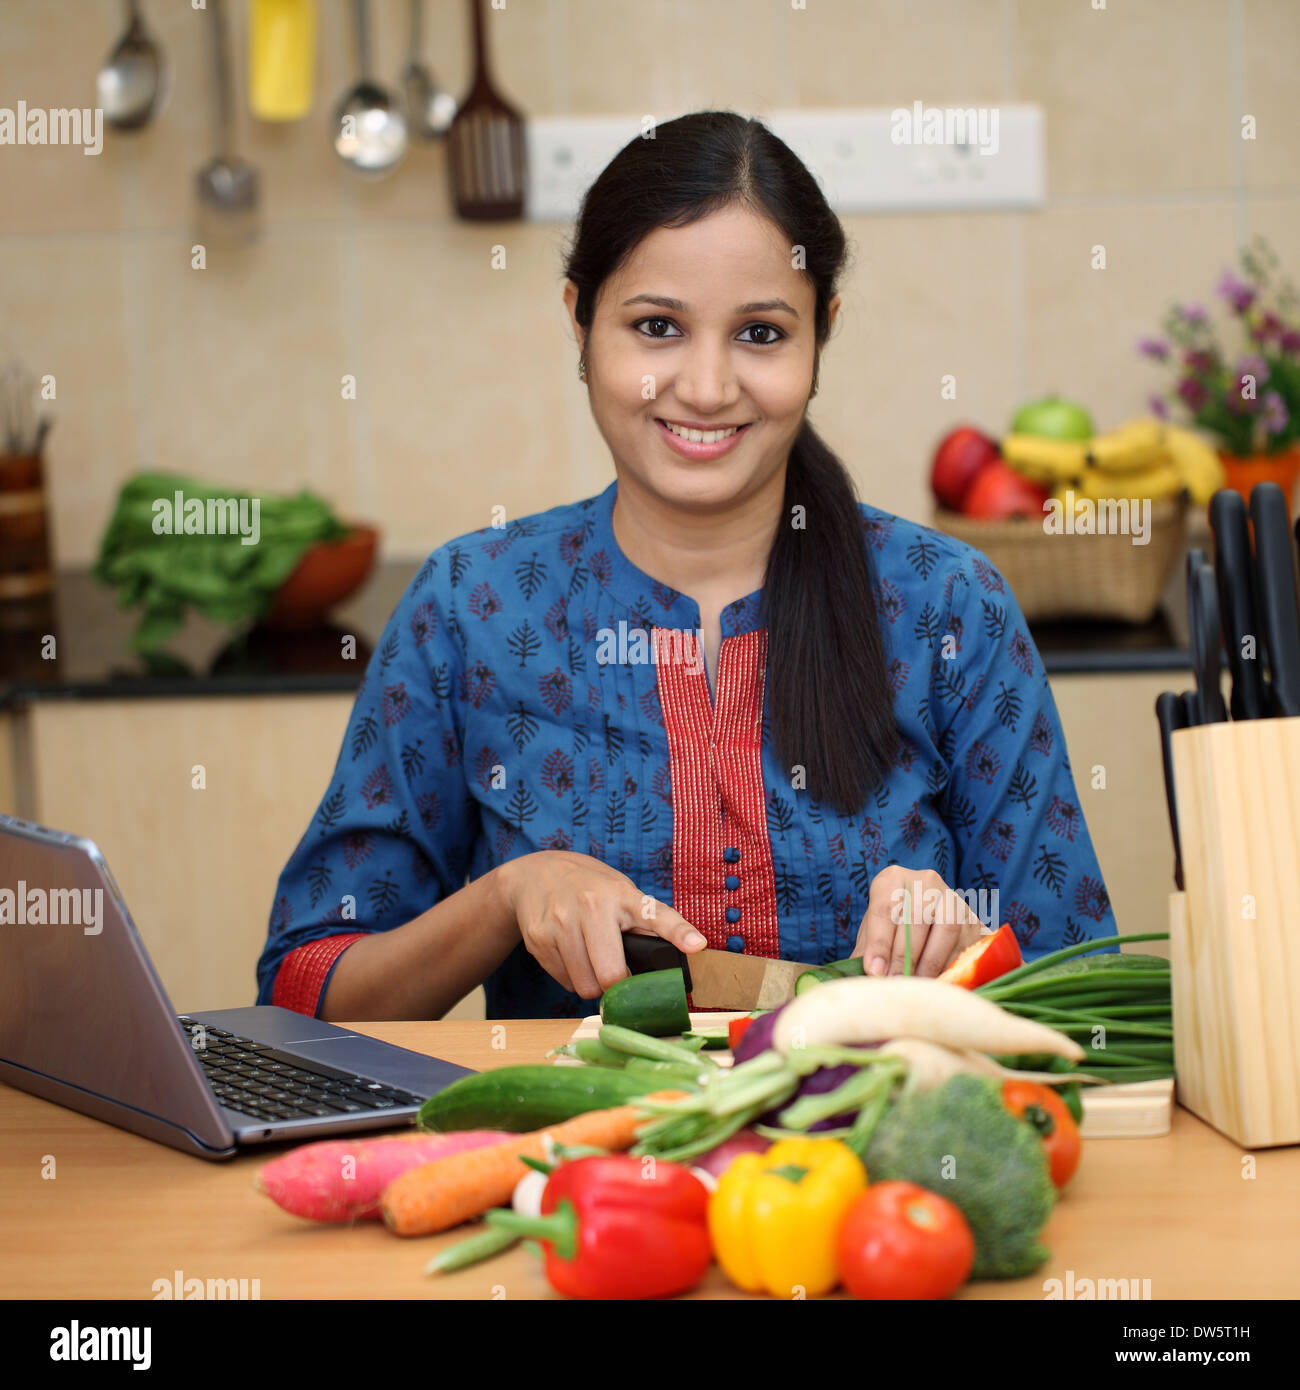 Image result for indian woman chopping vegetables